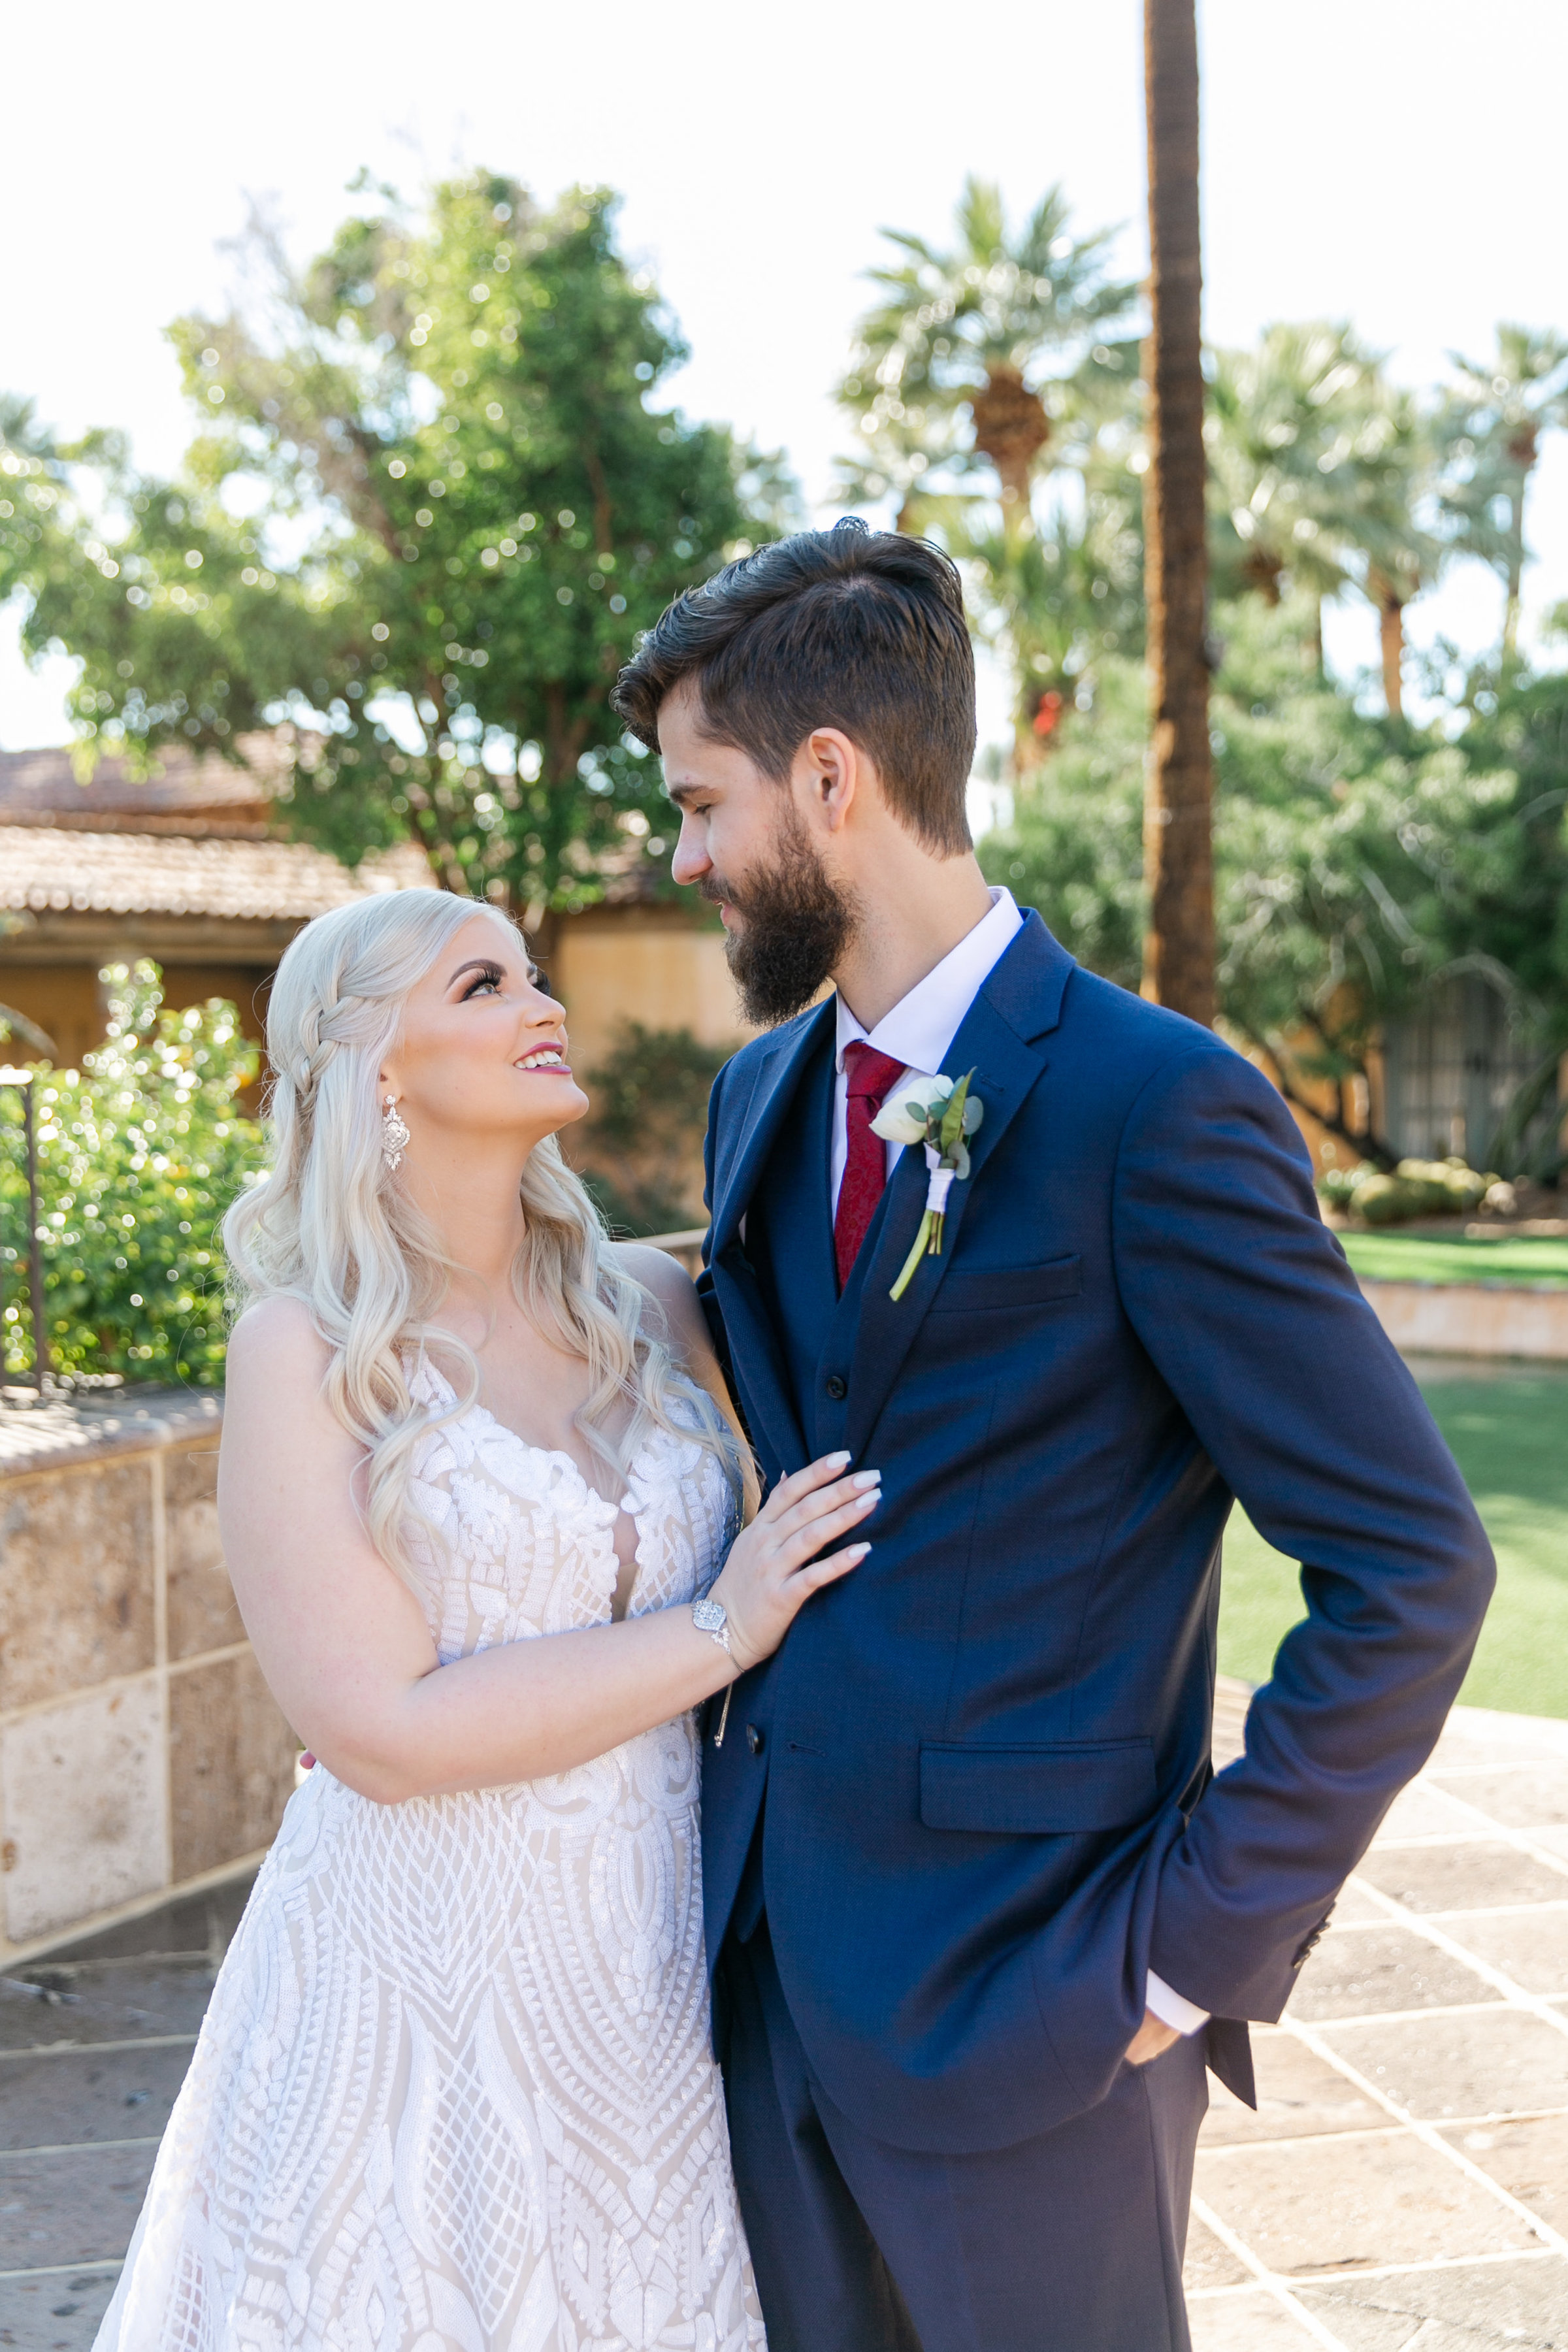 Karlie Colleen Photography - The Royal Palms Wedding - Some Like It Classic - Alex & Sam-117